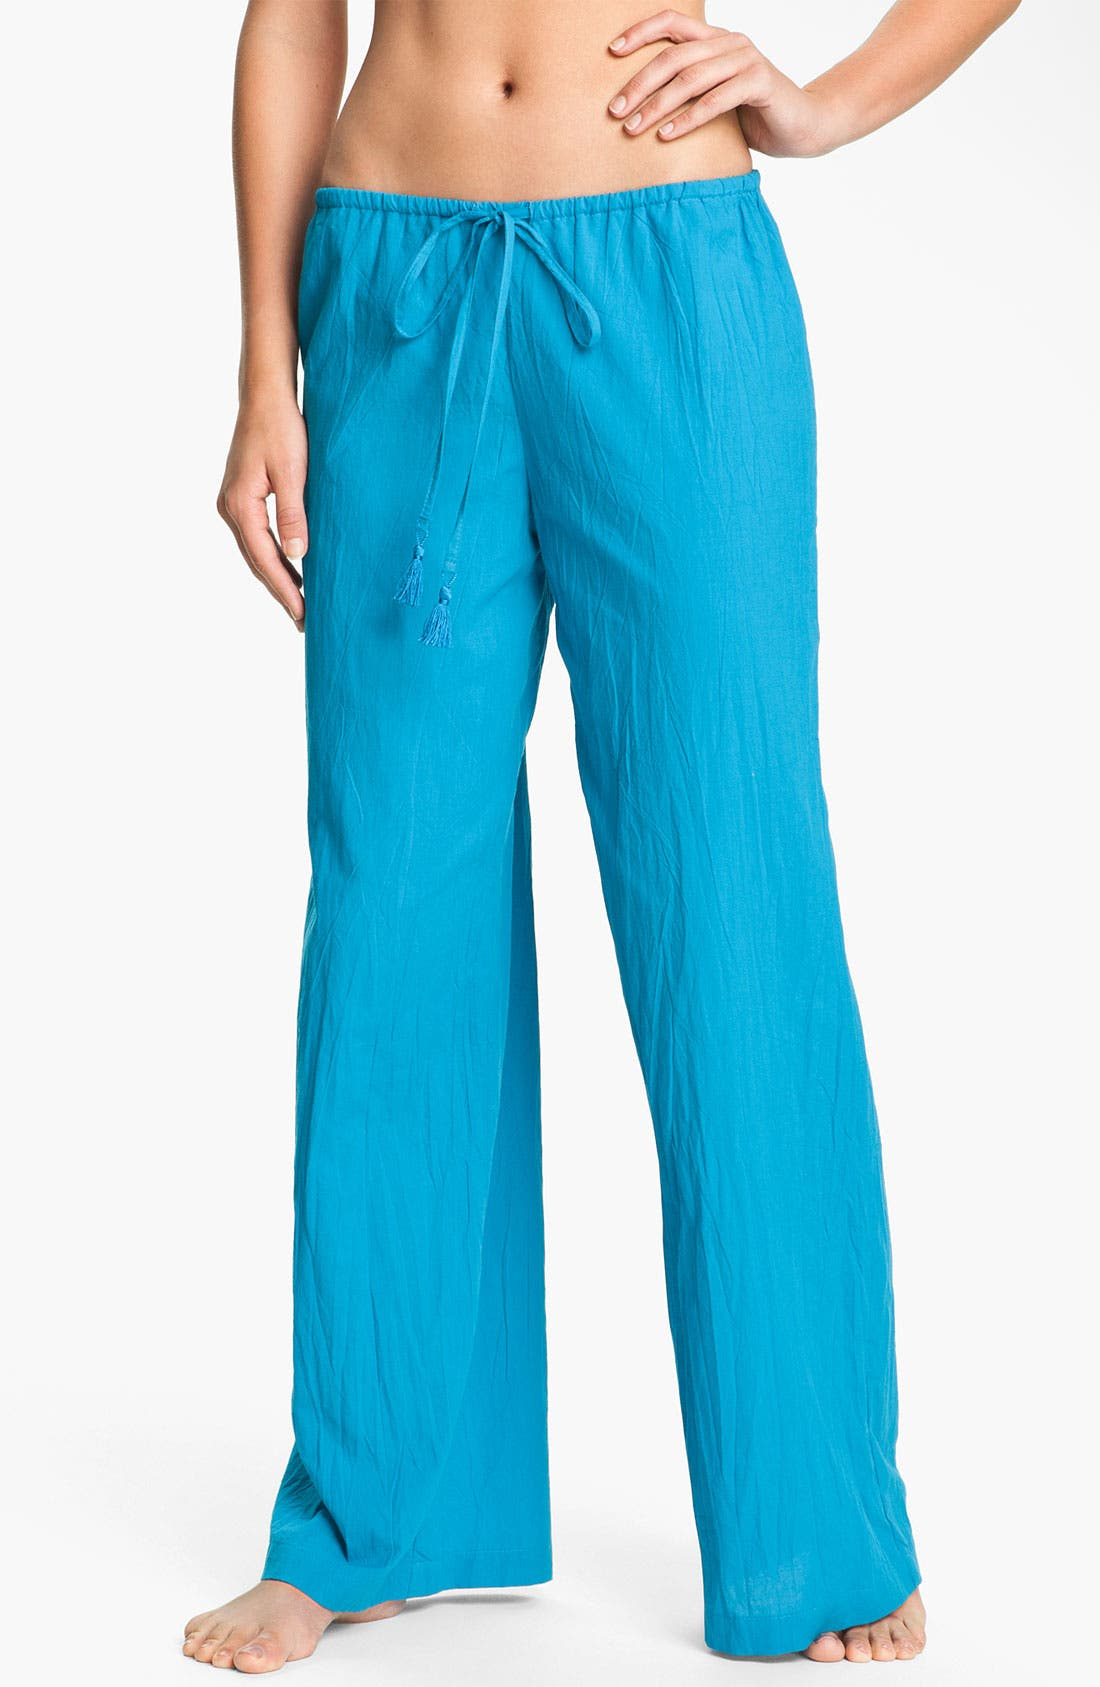 Alternate Image 1 Selected - Tommy Bahama Crinkle Drawstring Pants